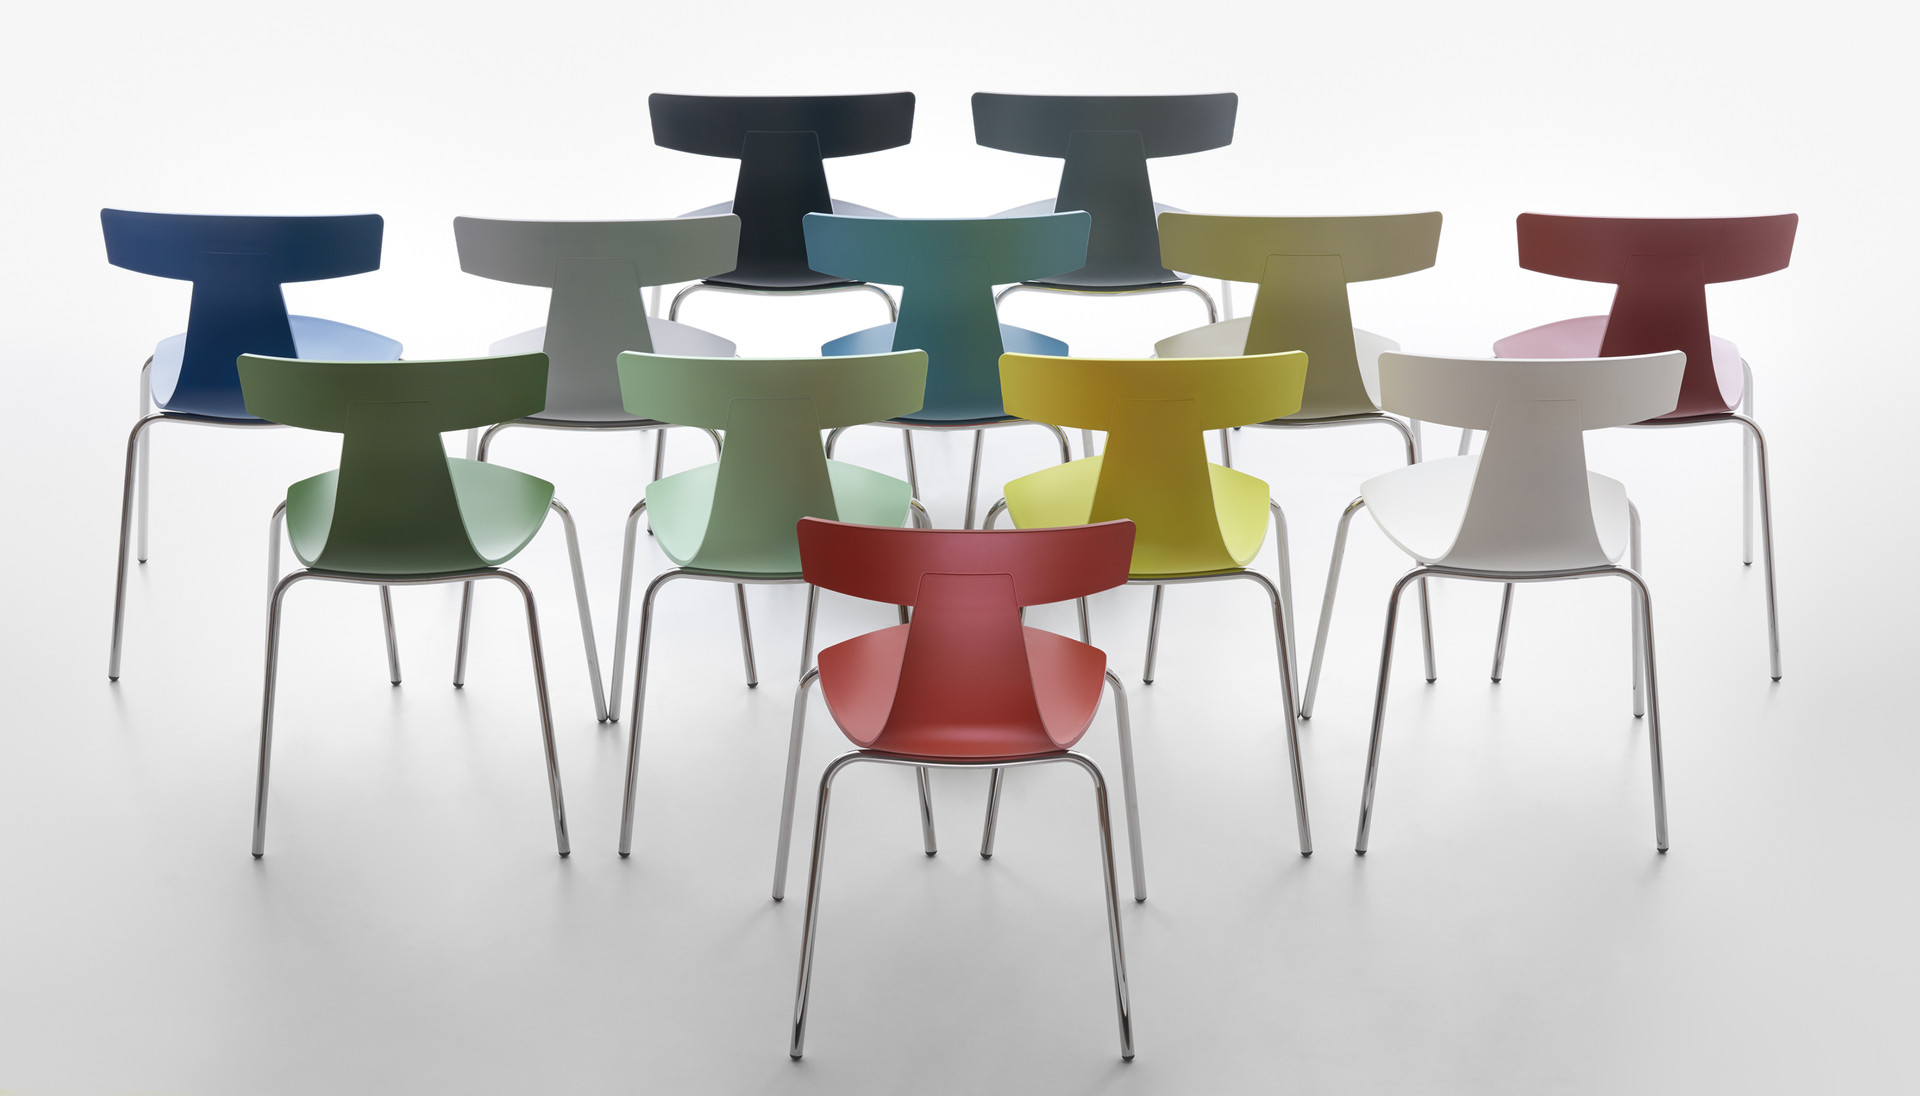 Plank - REMO plastic chair, chromed frame, plastic finishings in the colors black, basalt-grey, green-blue, avion-blue, oxide-red, coral-red, white, signal-grey, yellow-grey, fern-green, pastel-green, sulfur-yellow.